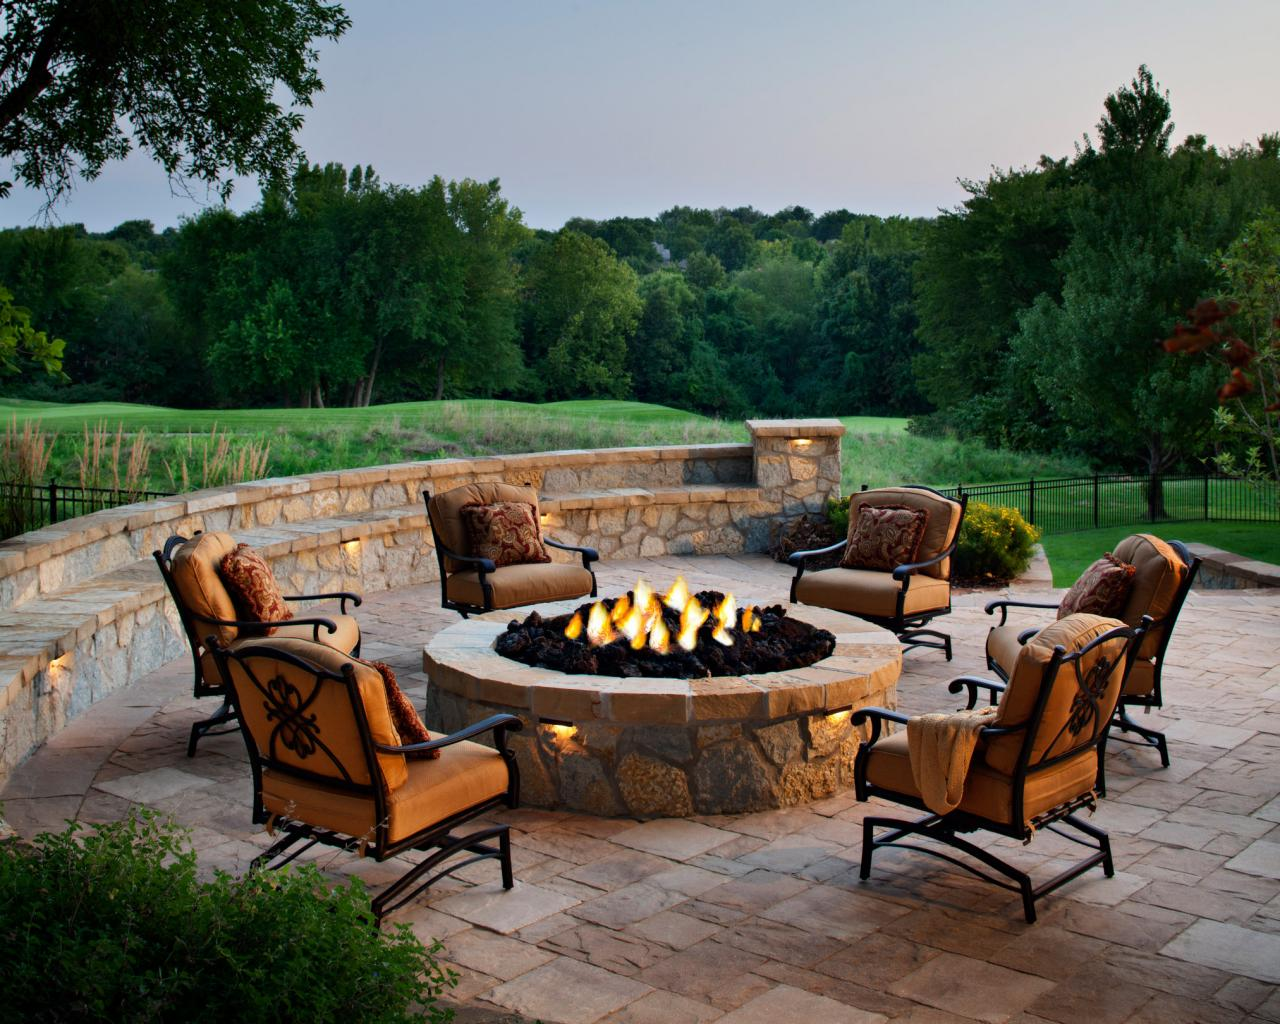 Designing a Patio Around a Fire Pit